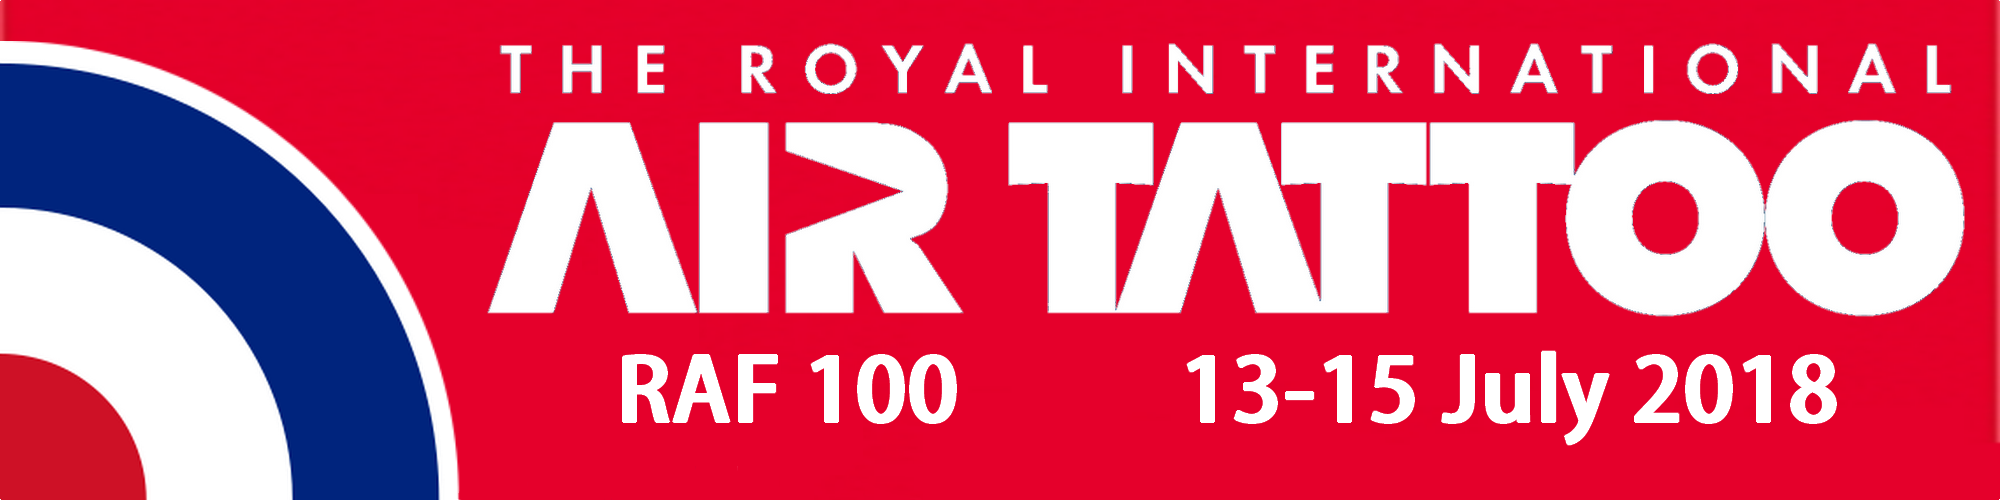 RAF 100th Anniversary , RIAT 2018 ,RIAT 2018 Schedule - Fairford Airshow , airtattoo , CF-18 Hornet Canada , meeting aerien 2018 ,F-35 lightning ii , Display Team 2018 airshow 2018 , July 13-15 , Royal International Air Tattoo 2018 , spotter day 2018 , aircraft , fairford , Royal International Air Tattoo (RIAT) 2018 , Angleterre , UK , Manifestation Aeriennes 2018 - RAF100 , riat18 #riat2018